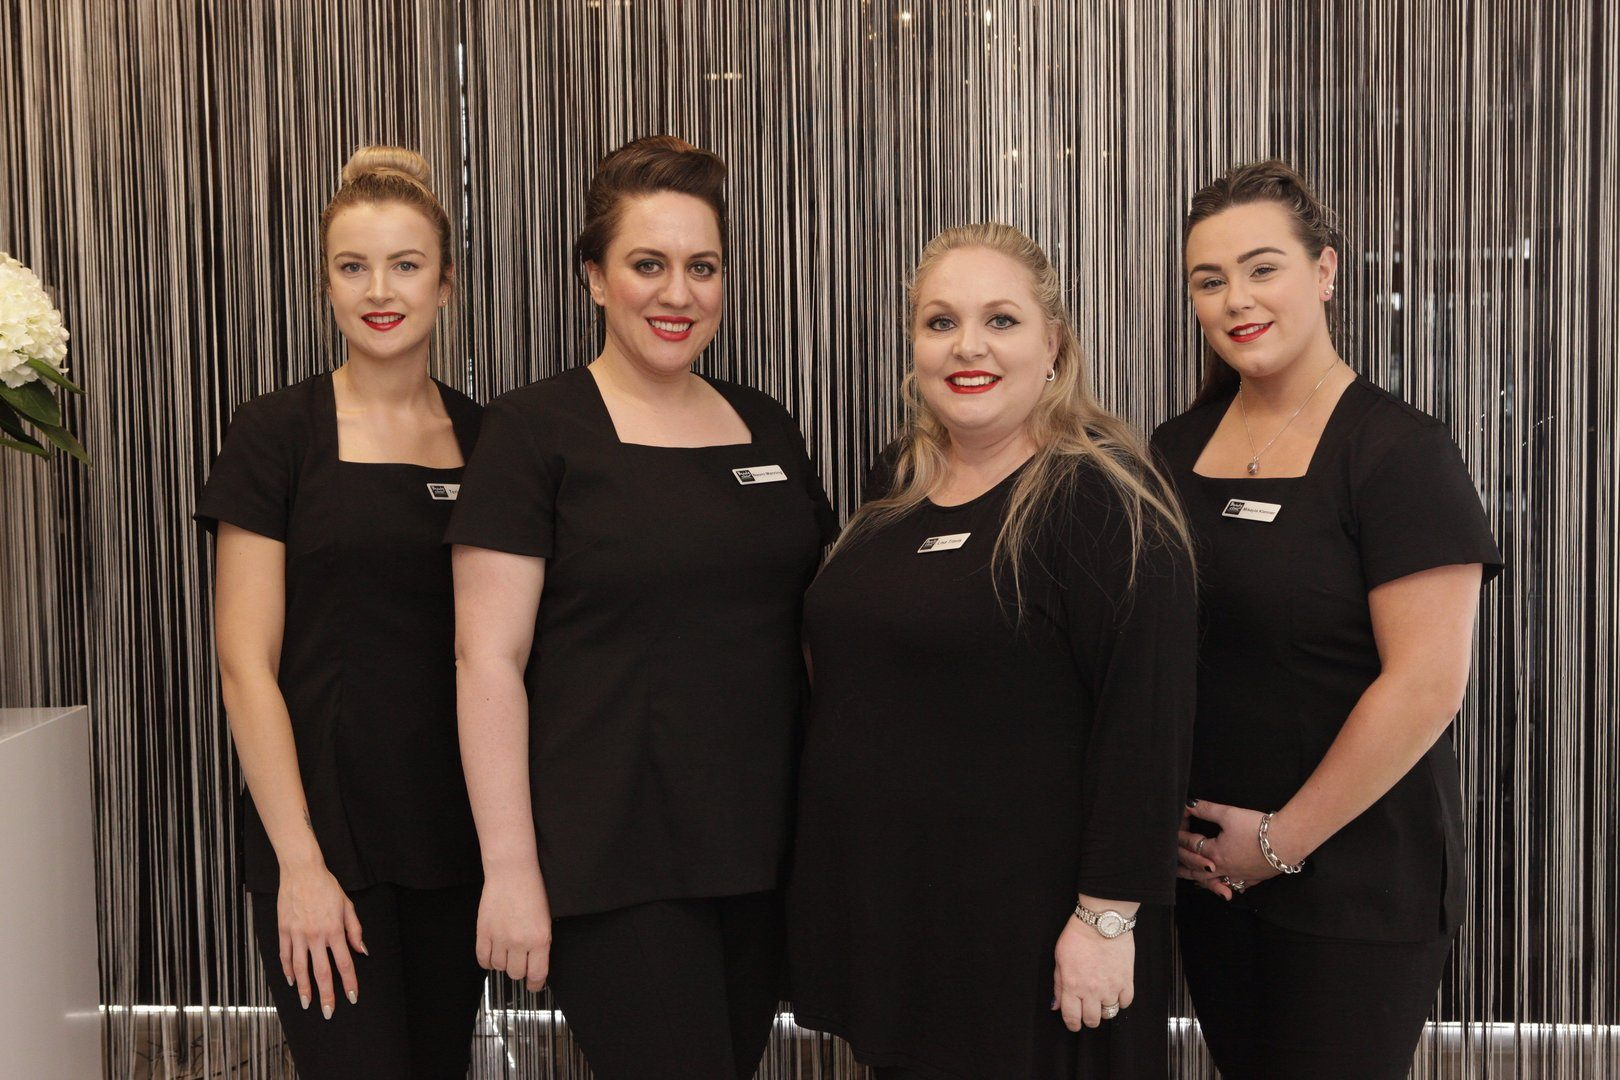 The Beauty Clinic Team - Teri, Naomi, Lisa Travis, Mikayla